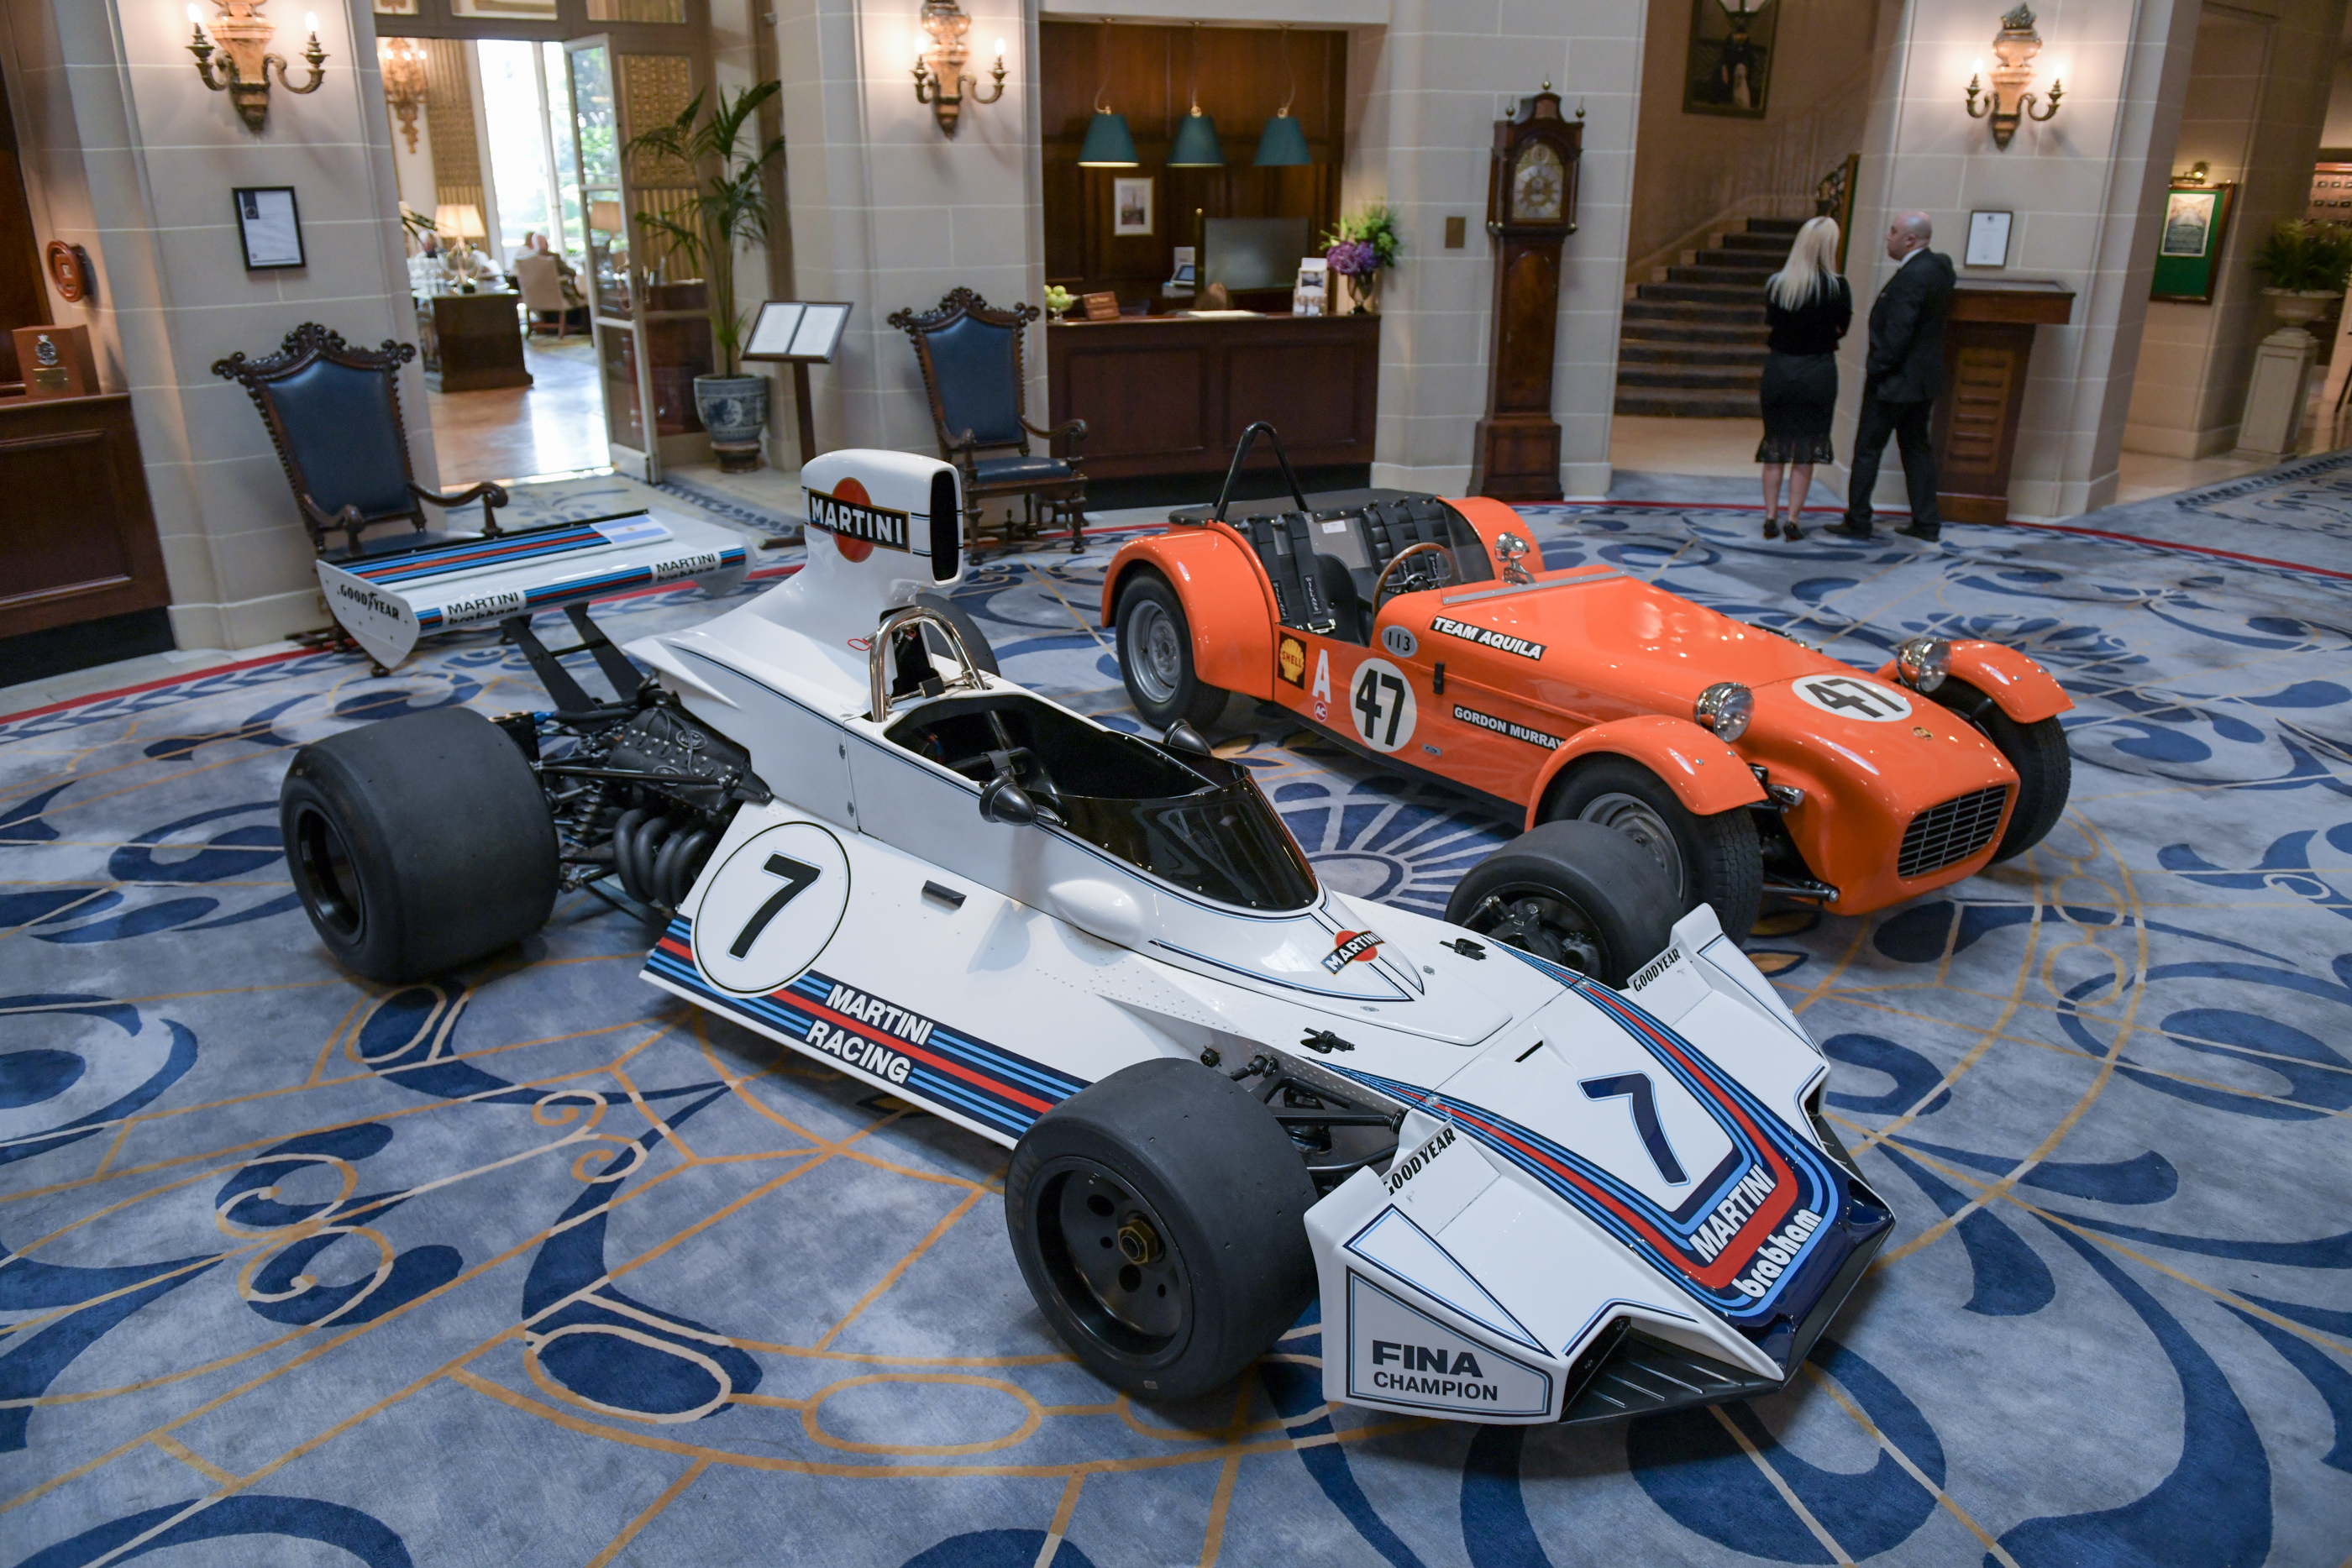 Cars of Gordon Murray